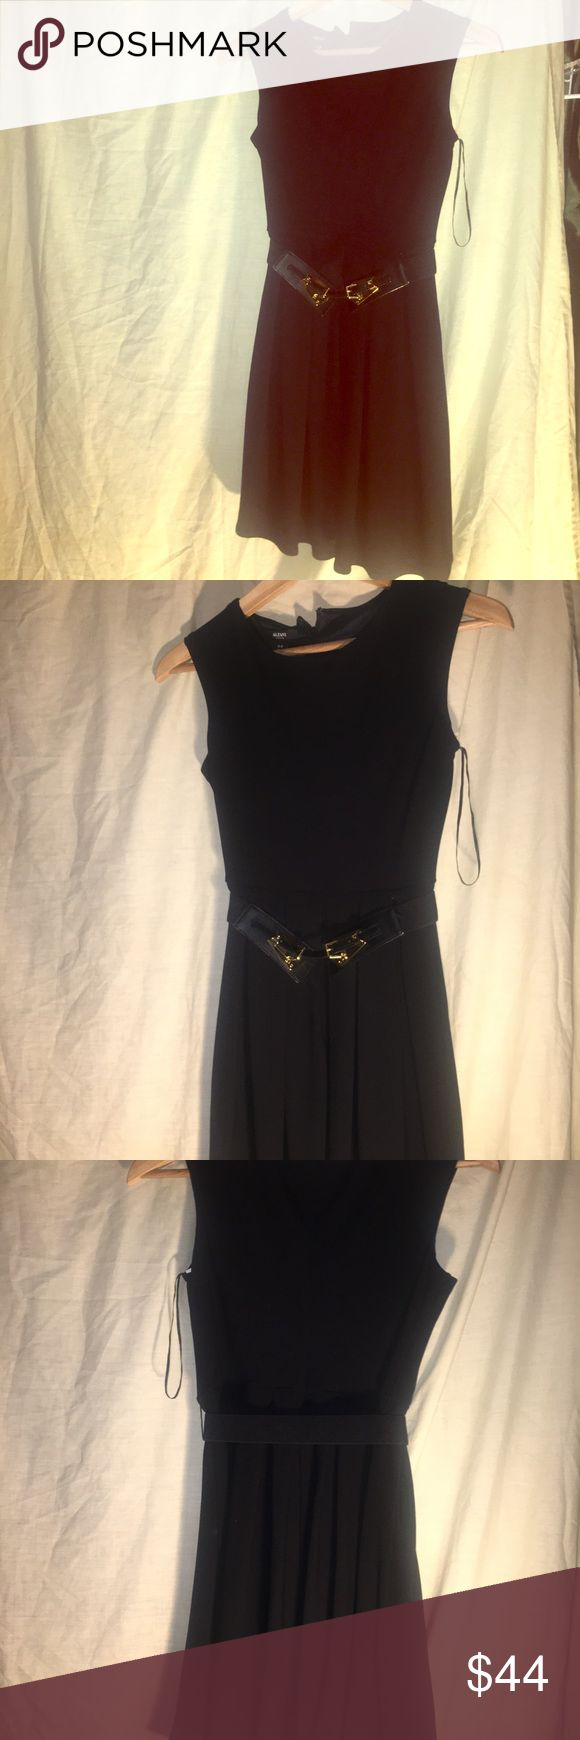 Alfani Black Autumn blush PET Dress Alfani Black Autumn blush PET Dress with black with gold belt buckles that latches around the waist. Deep black petite dress from Macy's. NWT. Open to trades. Please bundle you likes so I can make you an offer. Or feel free to make me an offer as well. ✌️✌️✌️ fashionistas Alfani Dresses Midi